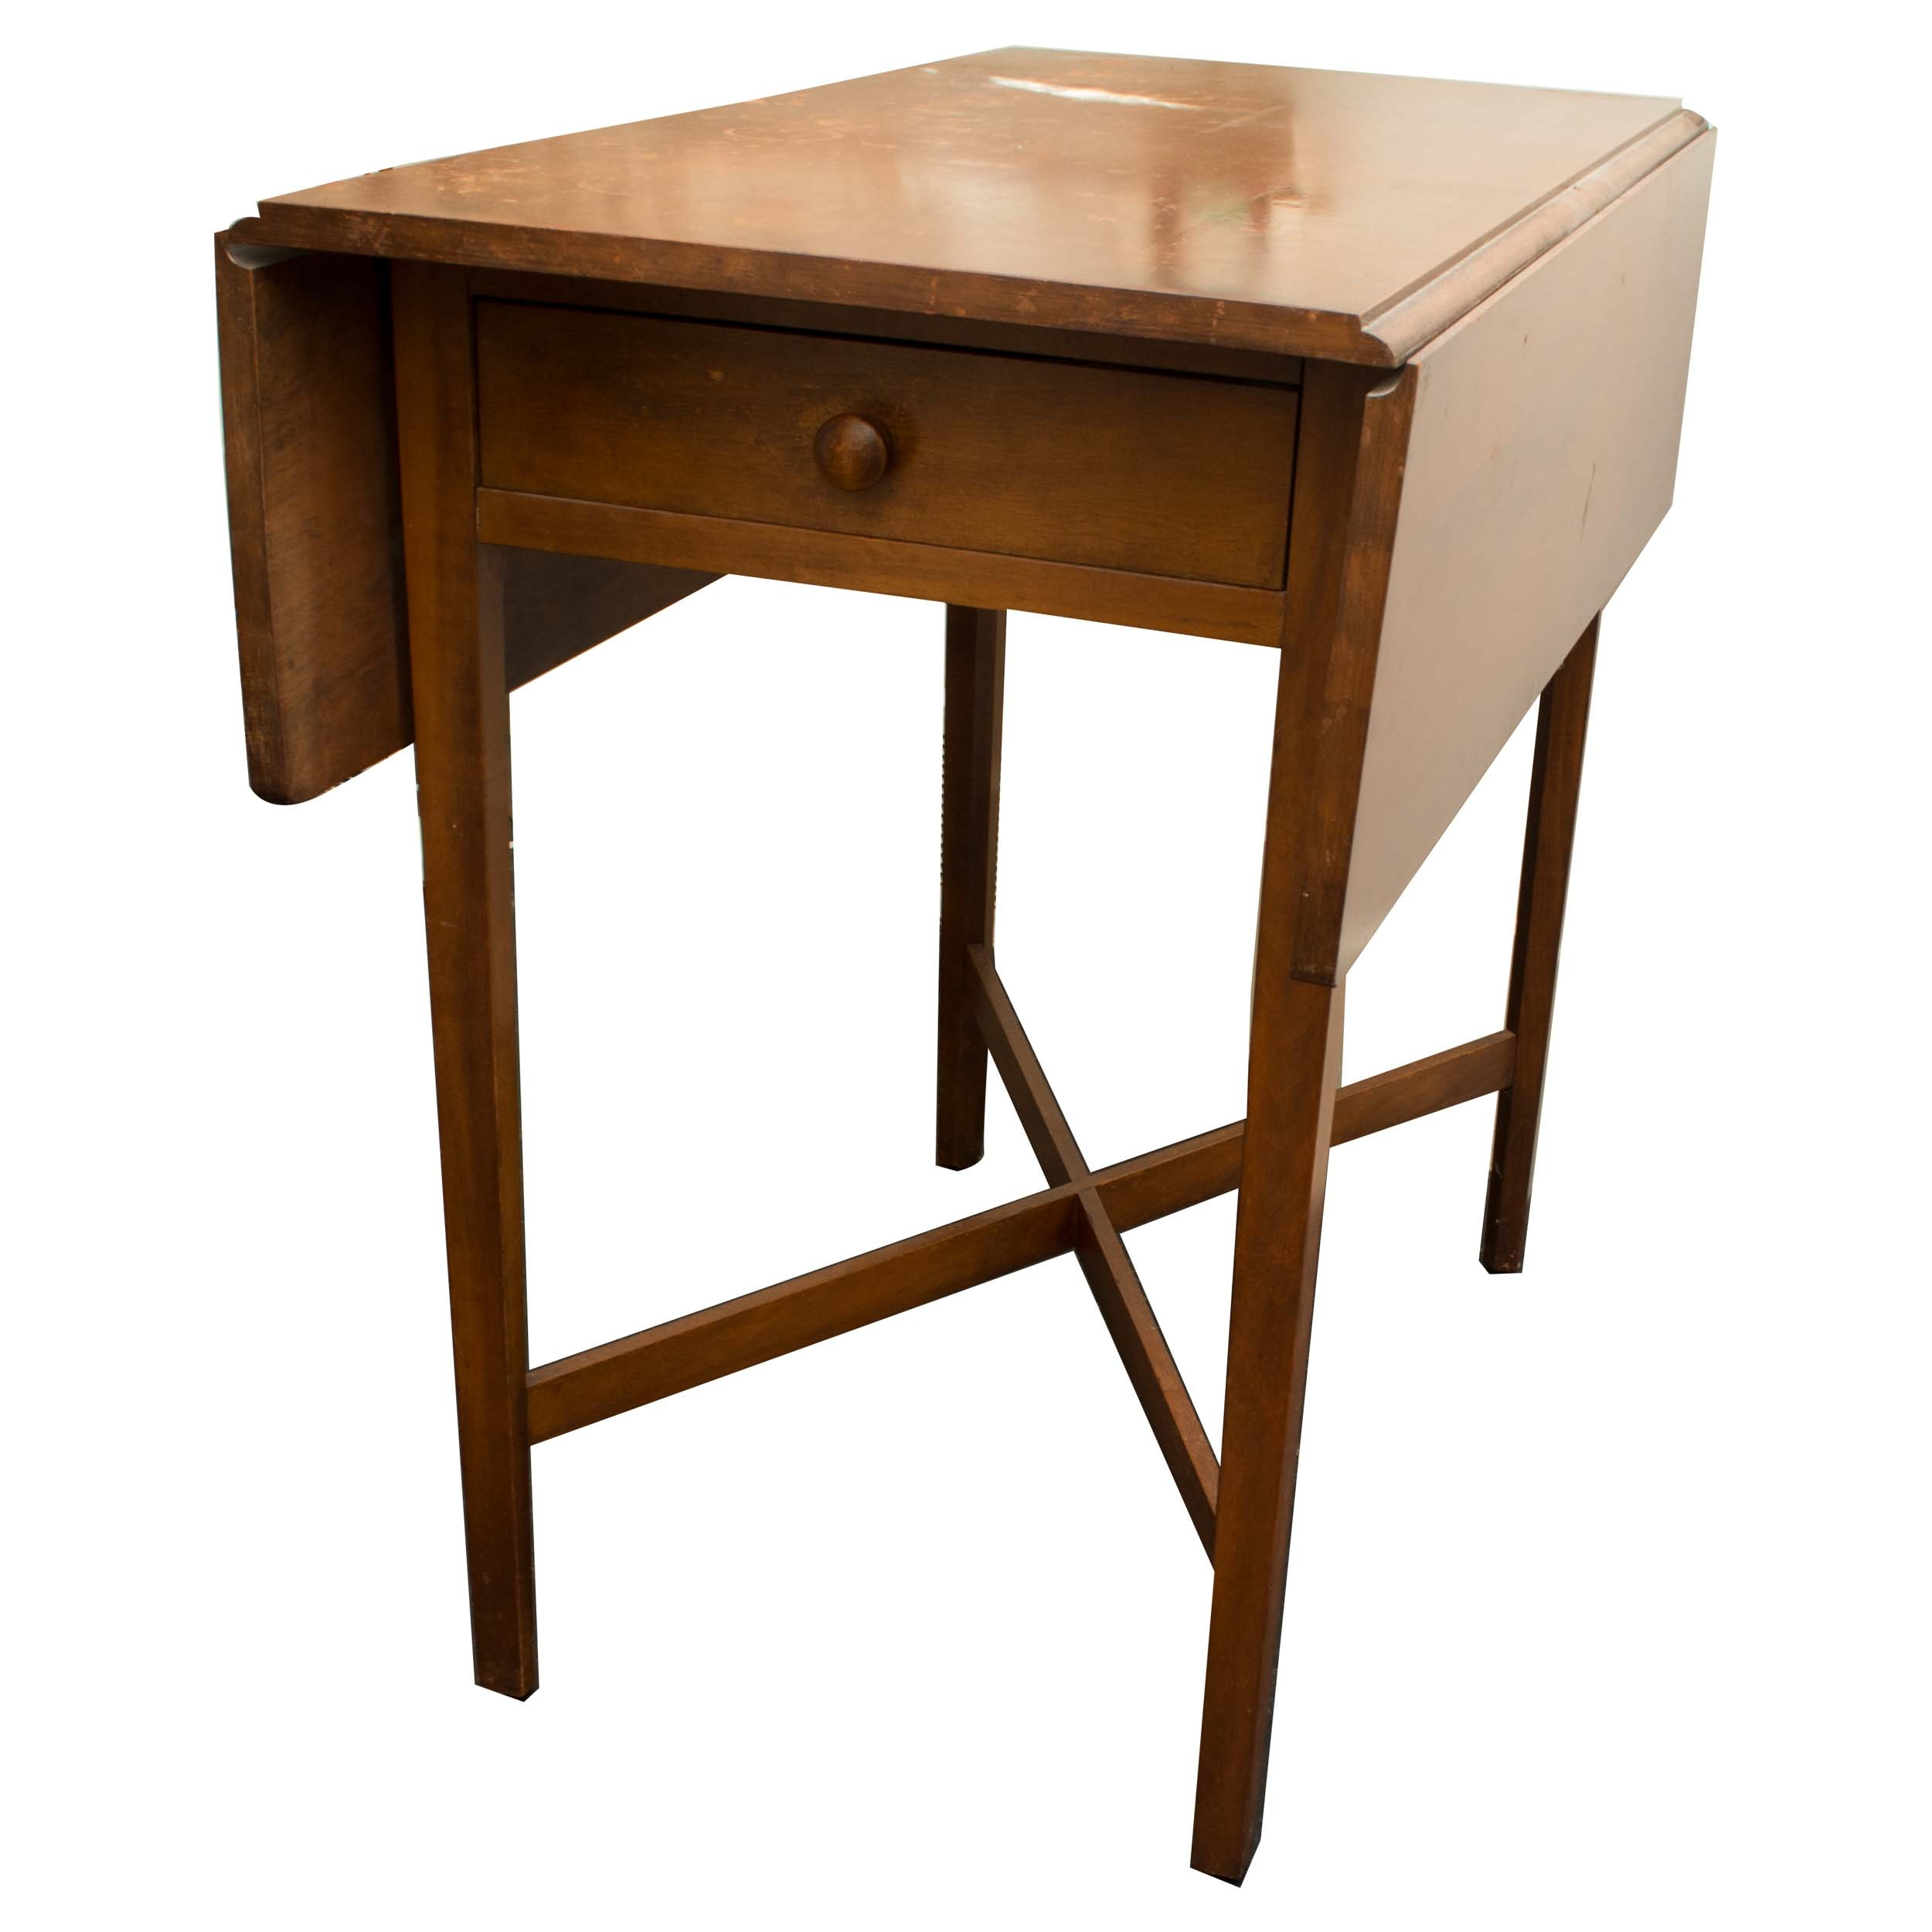 Shaker Style Drop Leaf Table By CB ...